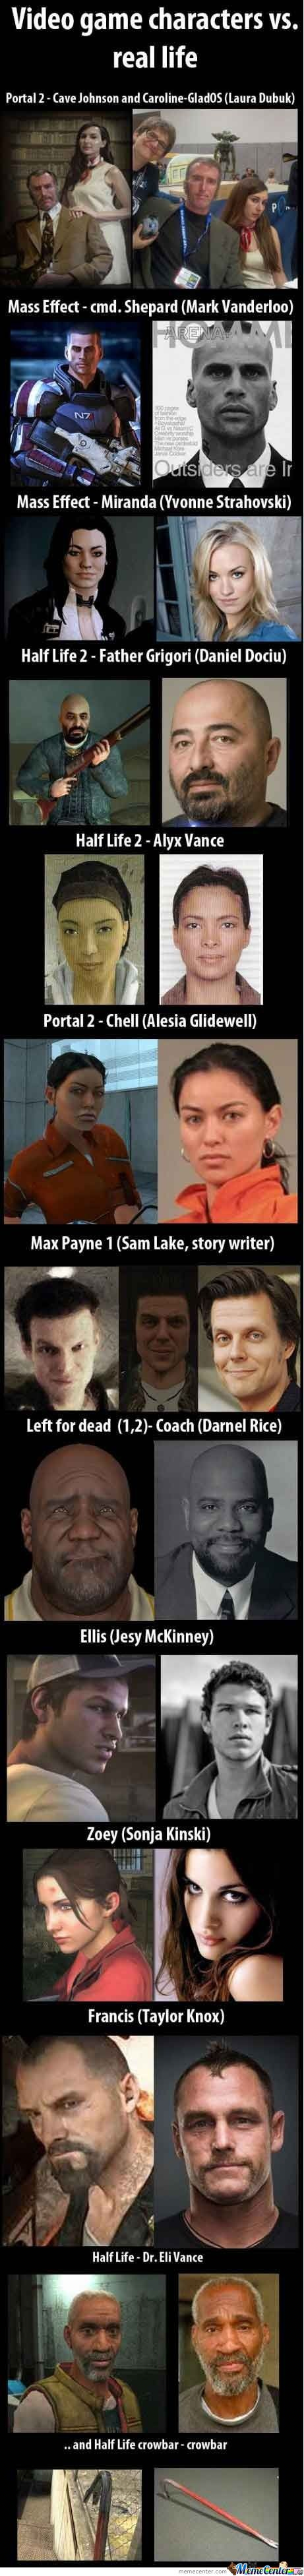 Video Games And Real Life